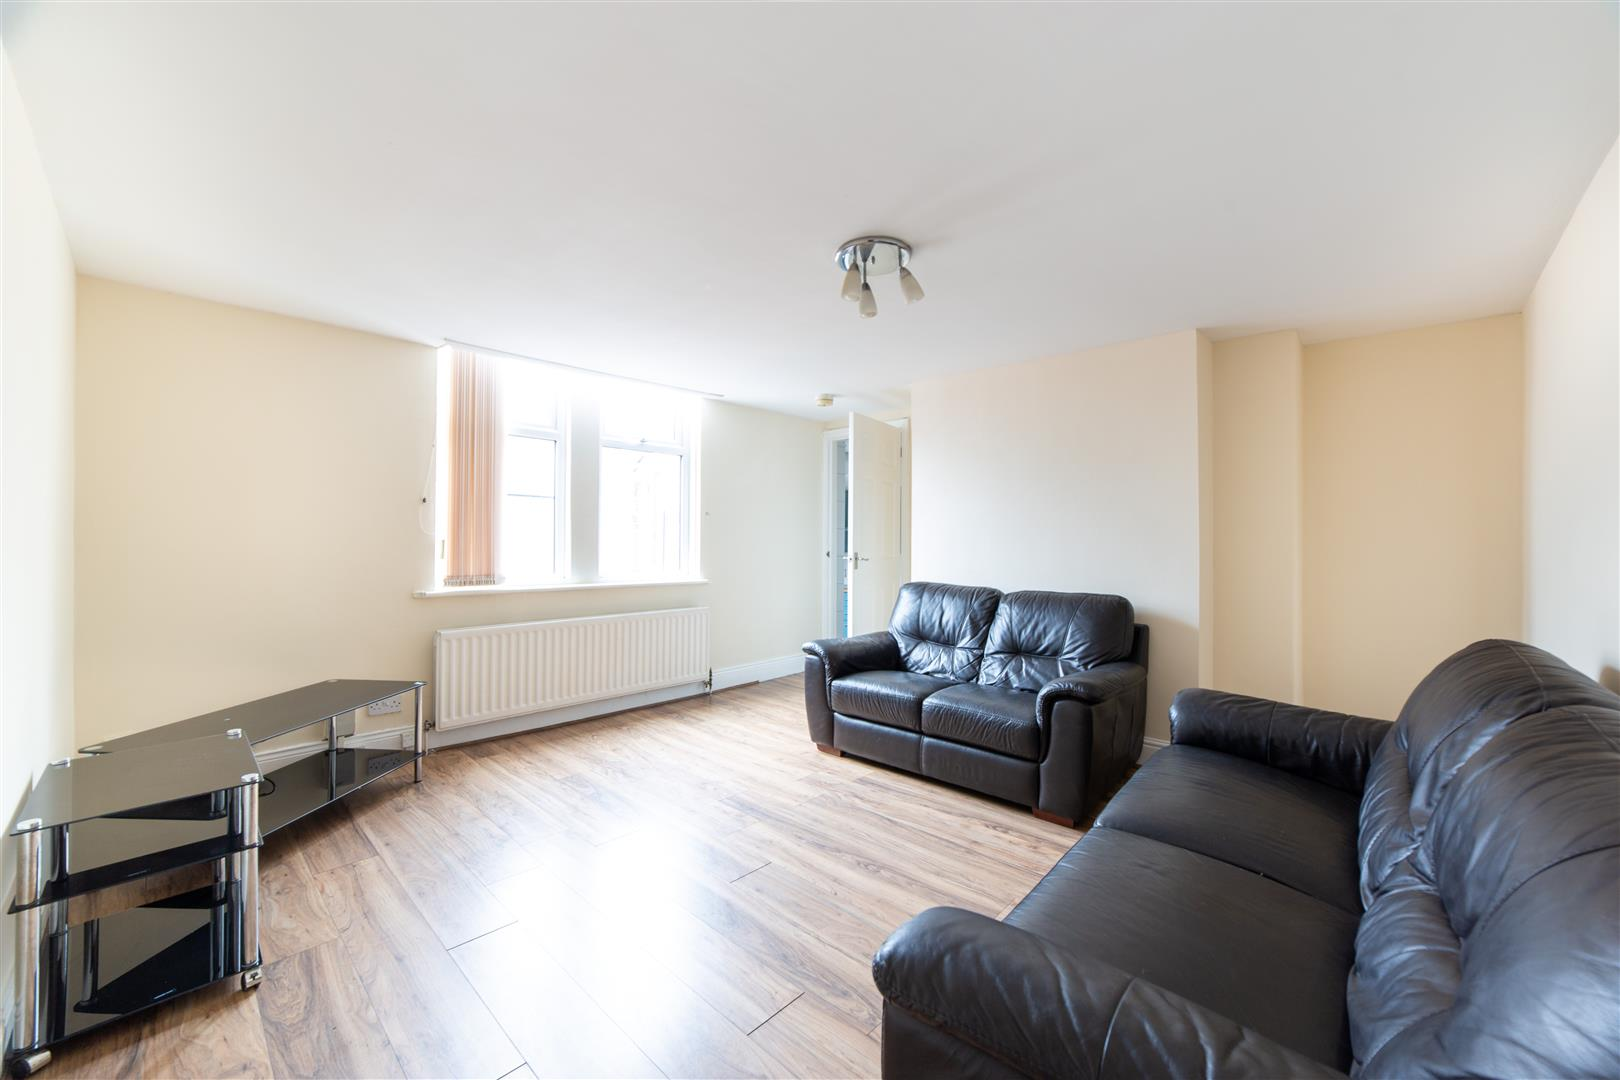 3 bed flat to rent in Newcastle Upon Tyne, NE6 5SX, NE6